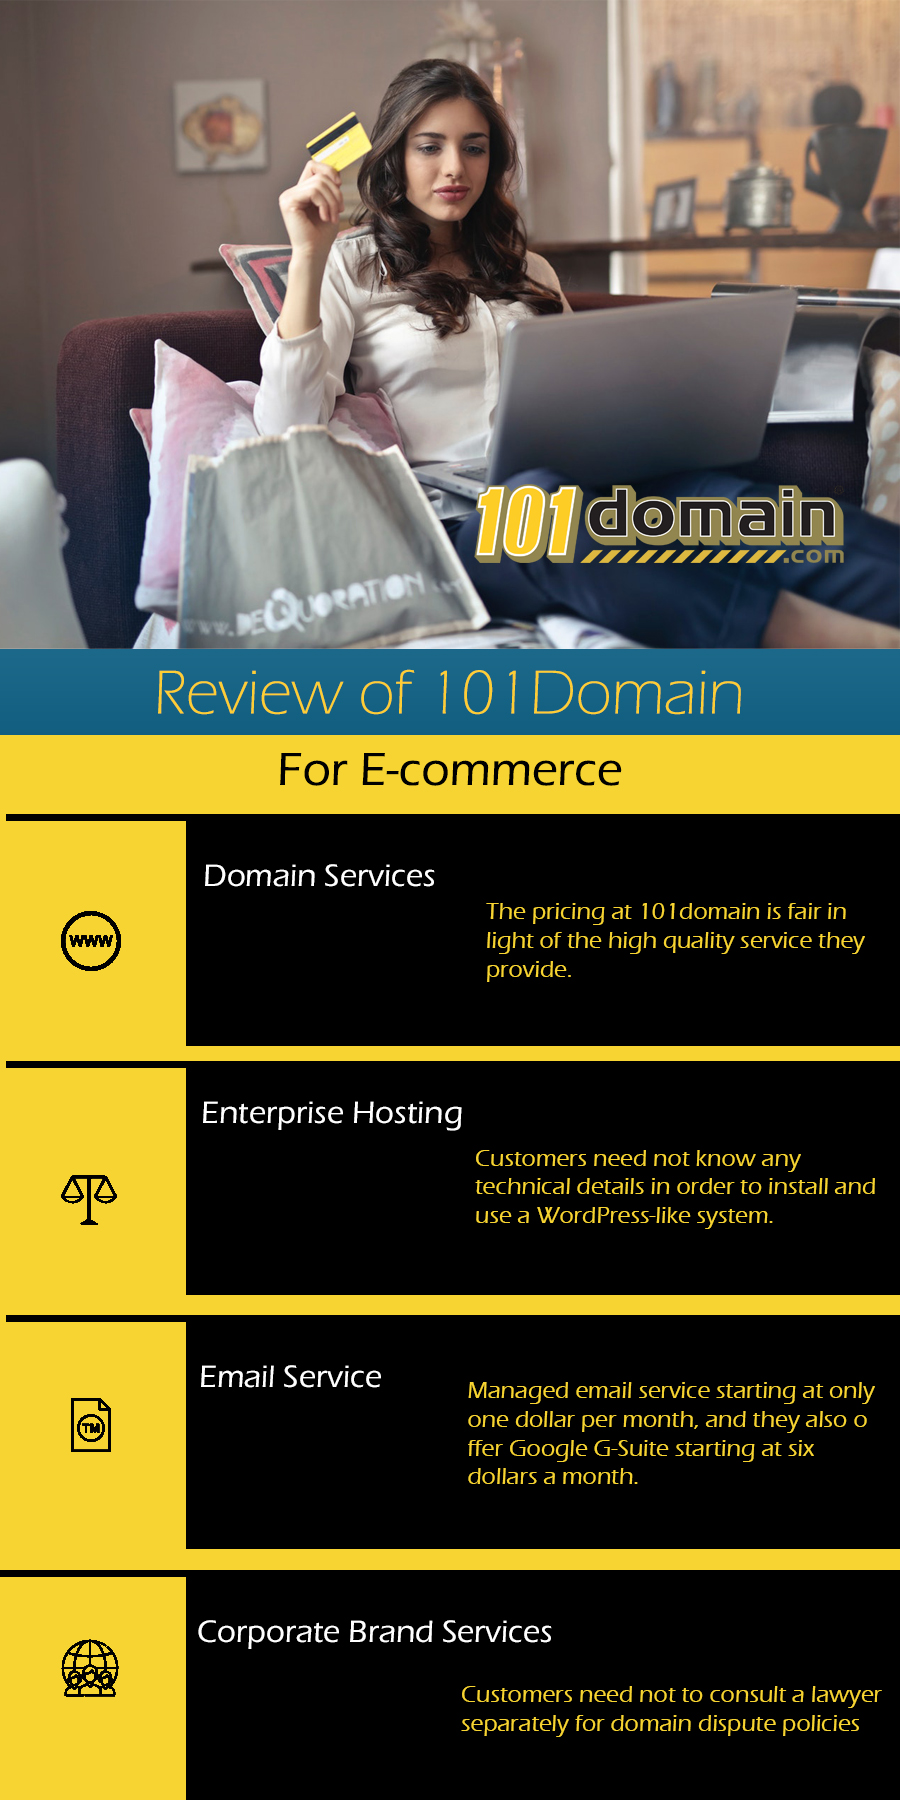 Review of 101Domain For E-commerce